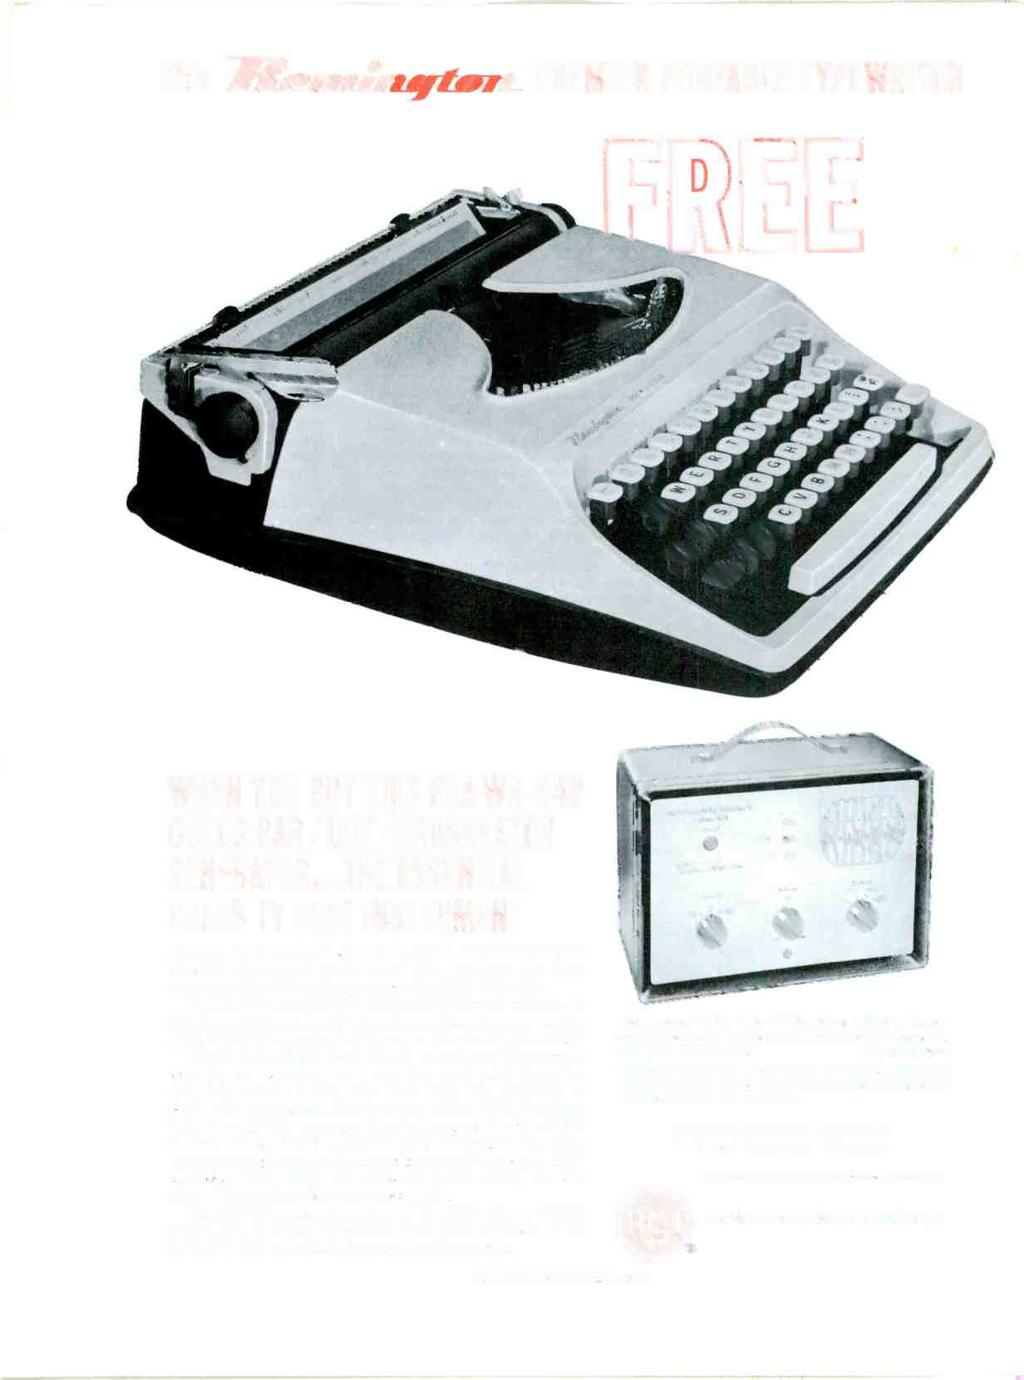 Fv A Al It 3 T 4 Ra Troubleshooting With The Scope Picture 25 Floppy Drive Wind Generator Construction Details This Premier Portable Typewriter When You Buy Rca Wr 64b Color Bar Dot